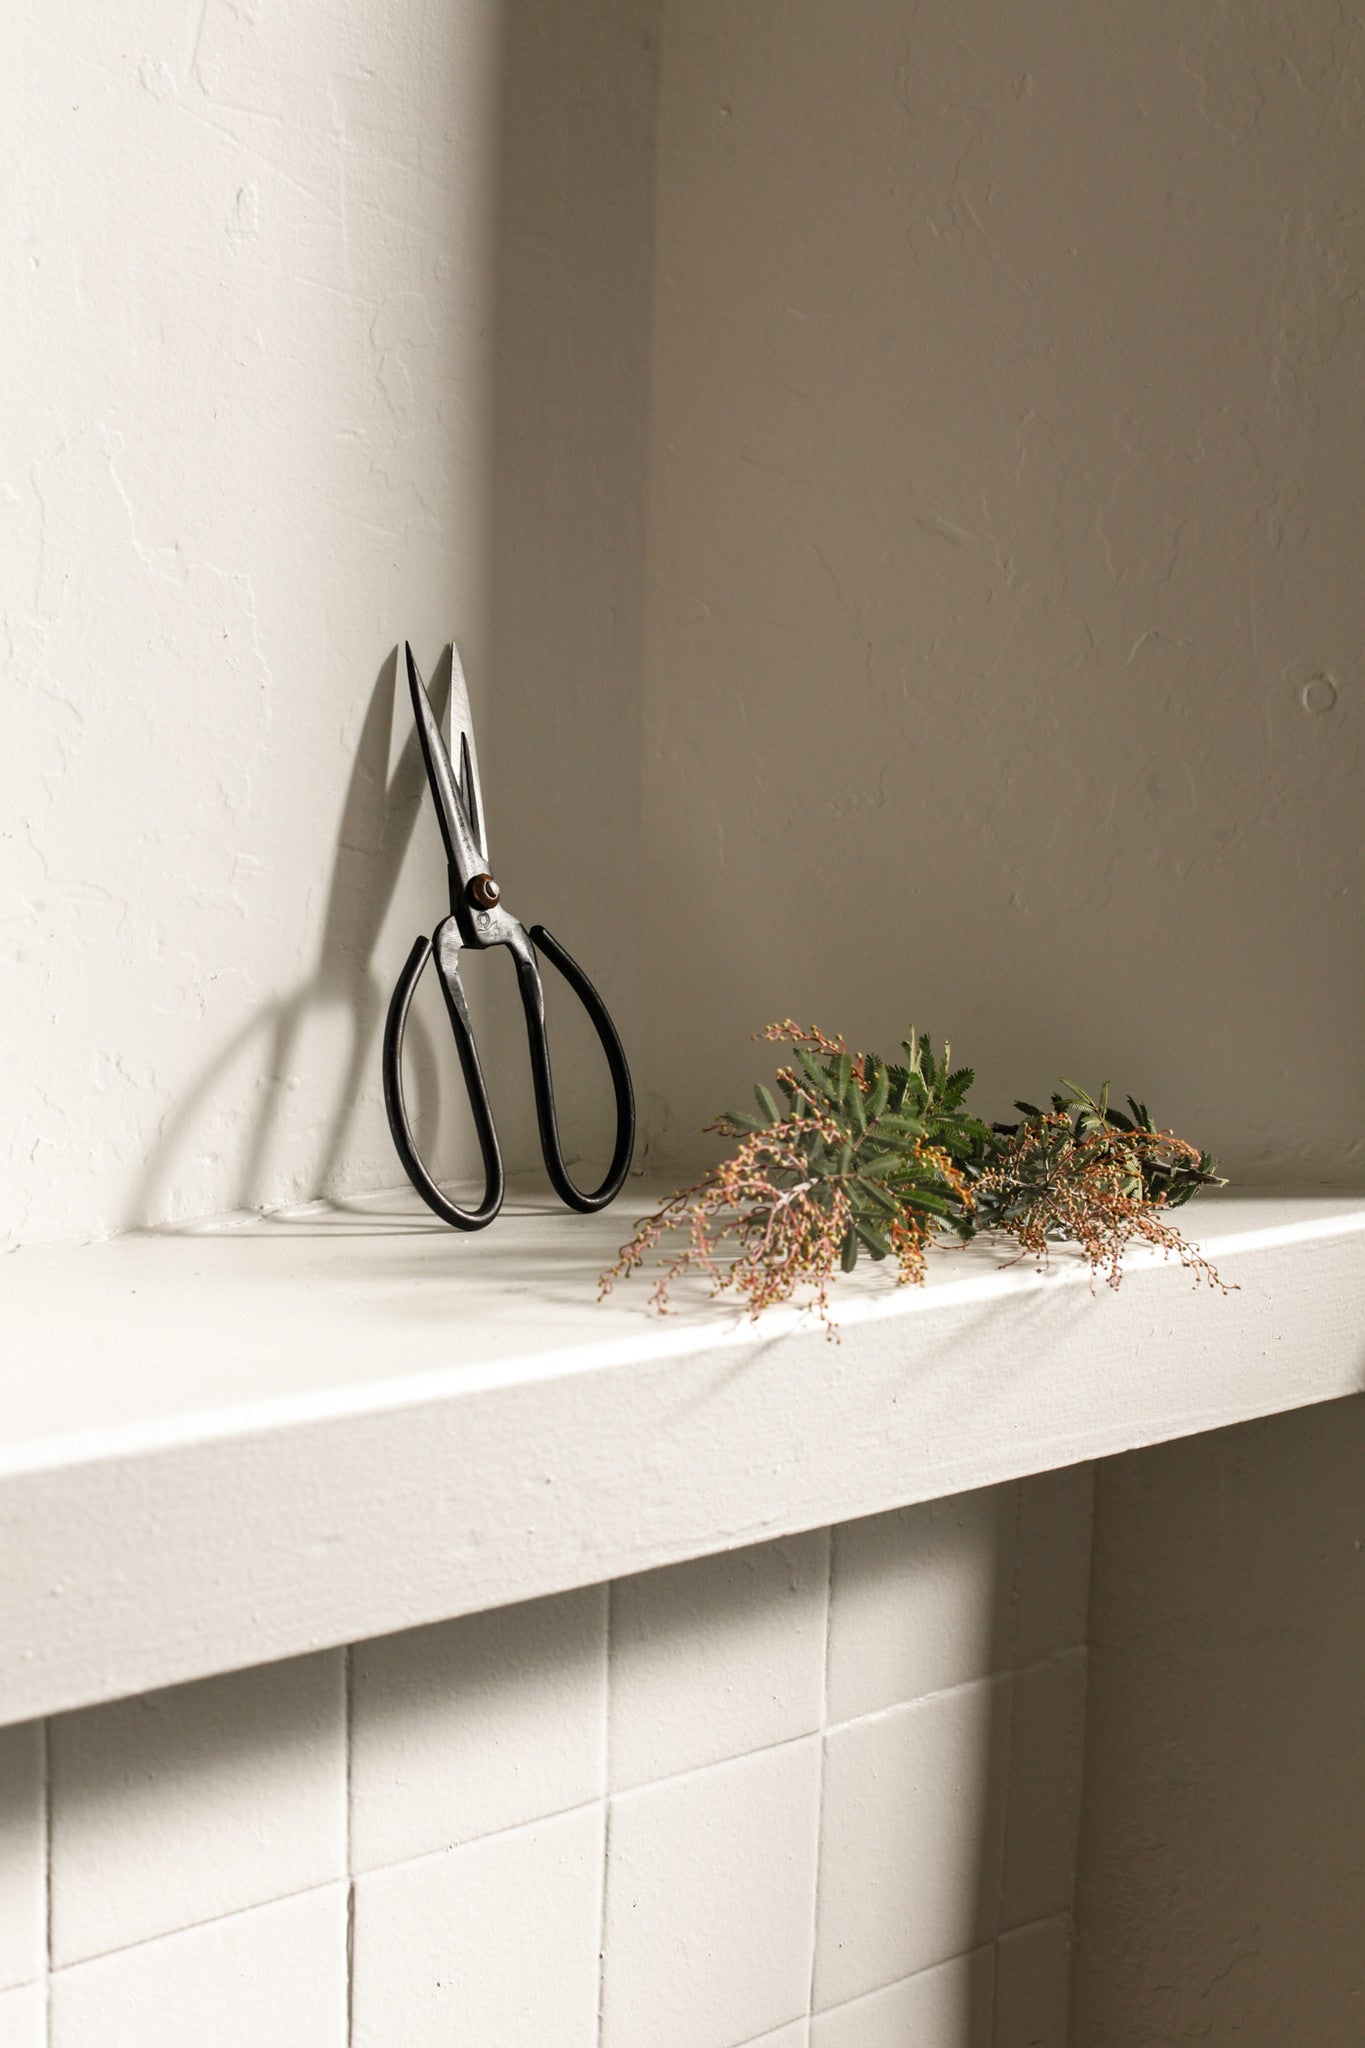 Forged Bonsai Garden Scissors